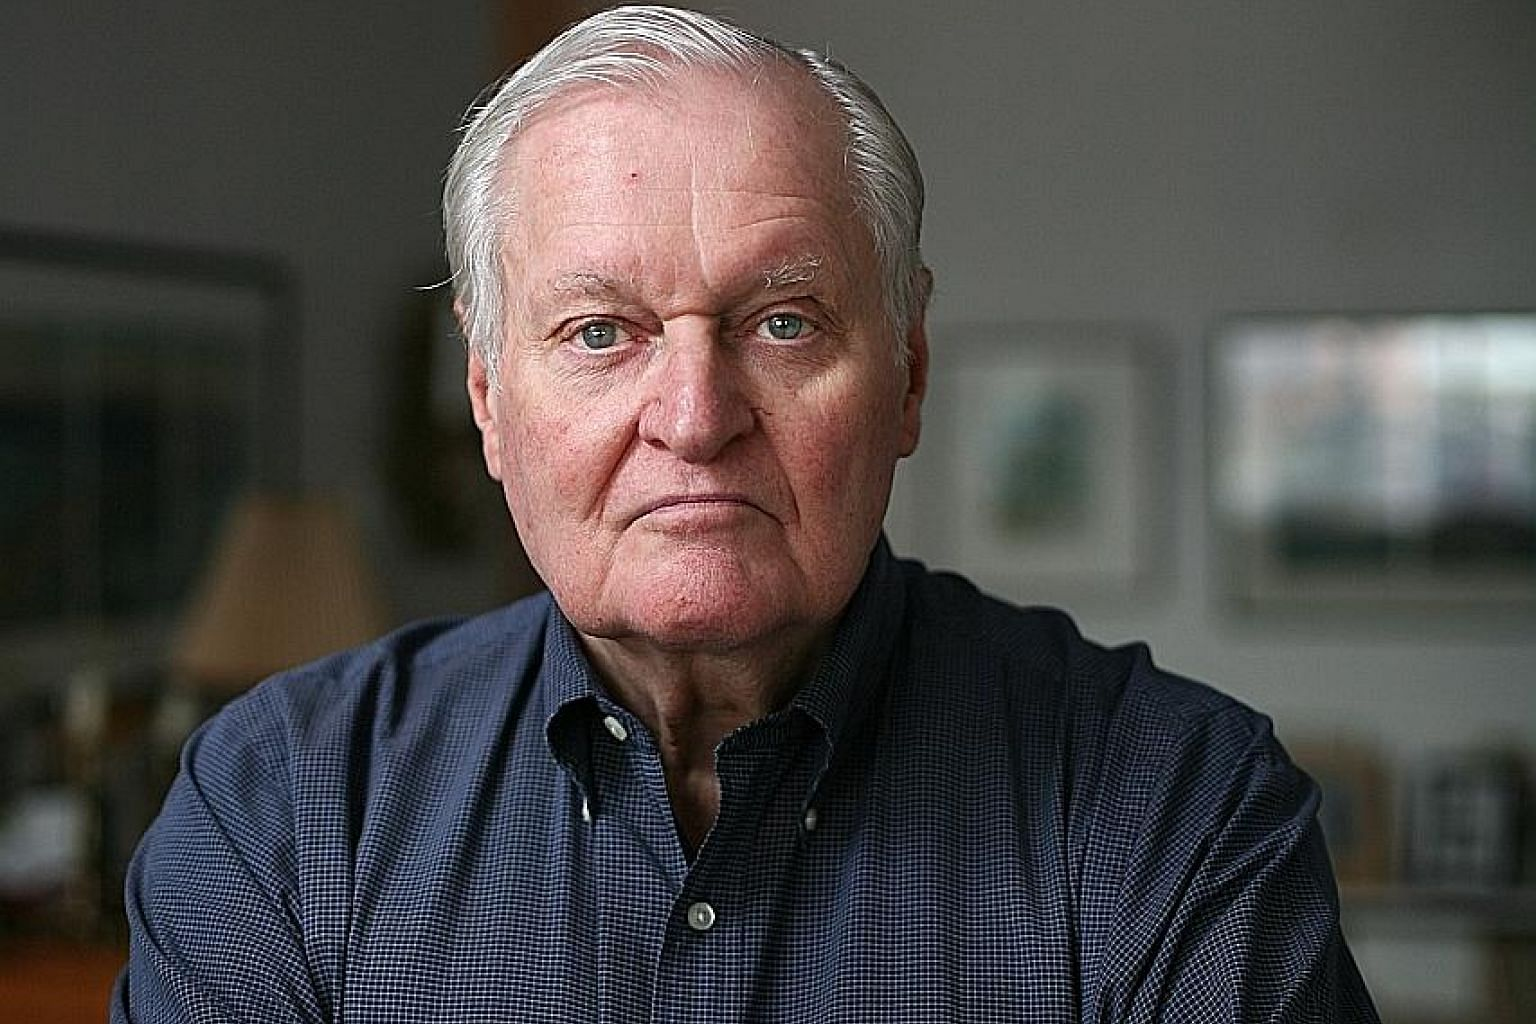 In 1976, John Ashbery (seen here in a 2008 photo) became the first to win the triple crown of literary prizes - the Pulitzer, National Book Award and National Book Critics Circle Award - for Self-Portrait In A Convex Mirror.